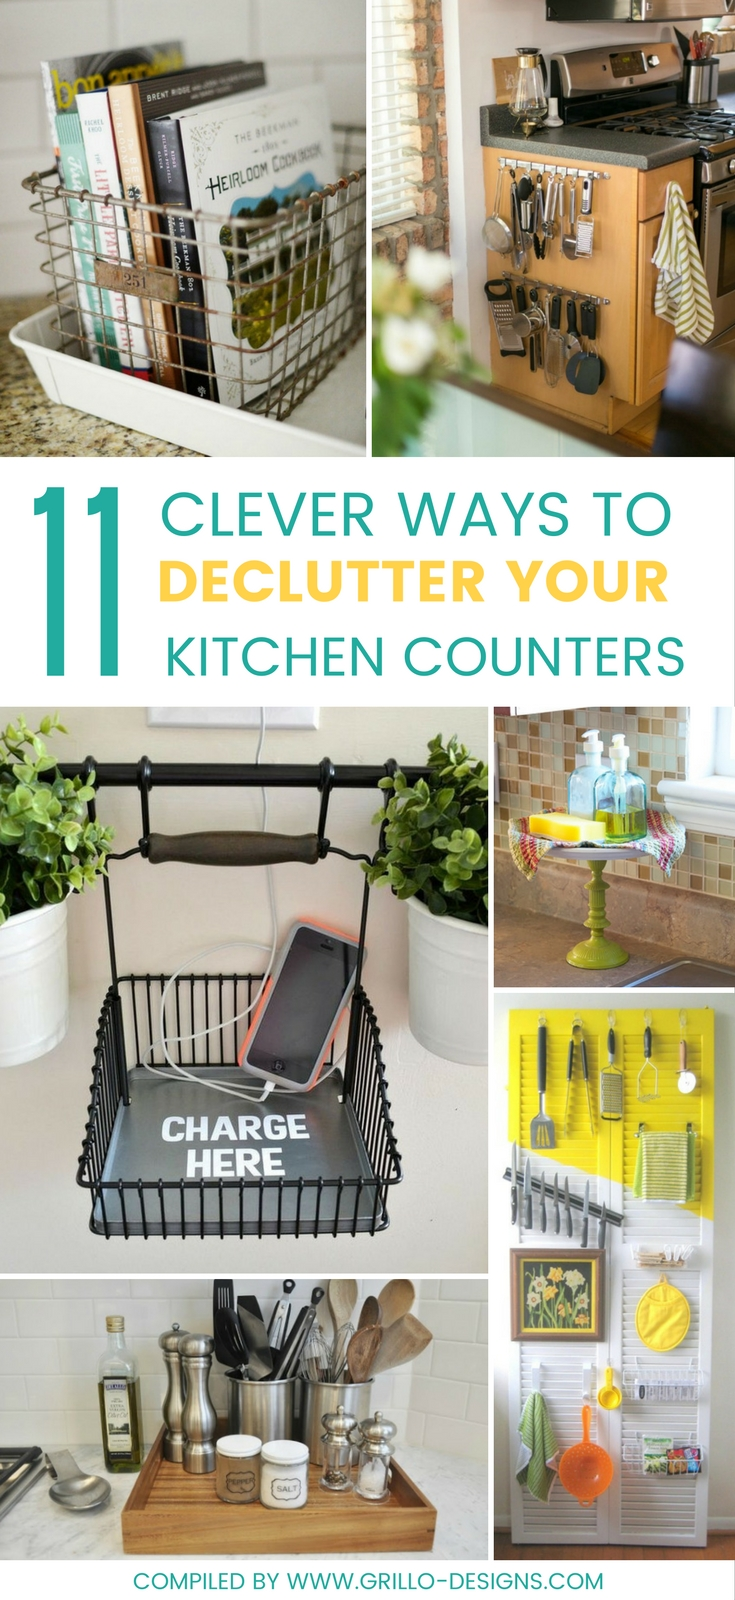 11 Clever Ways To Declutter Kitchen Counters • Grillo Designs